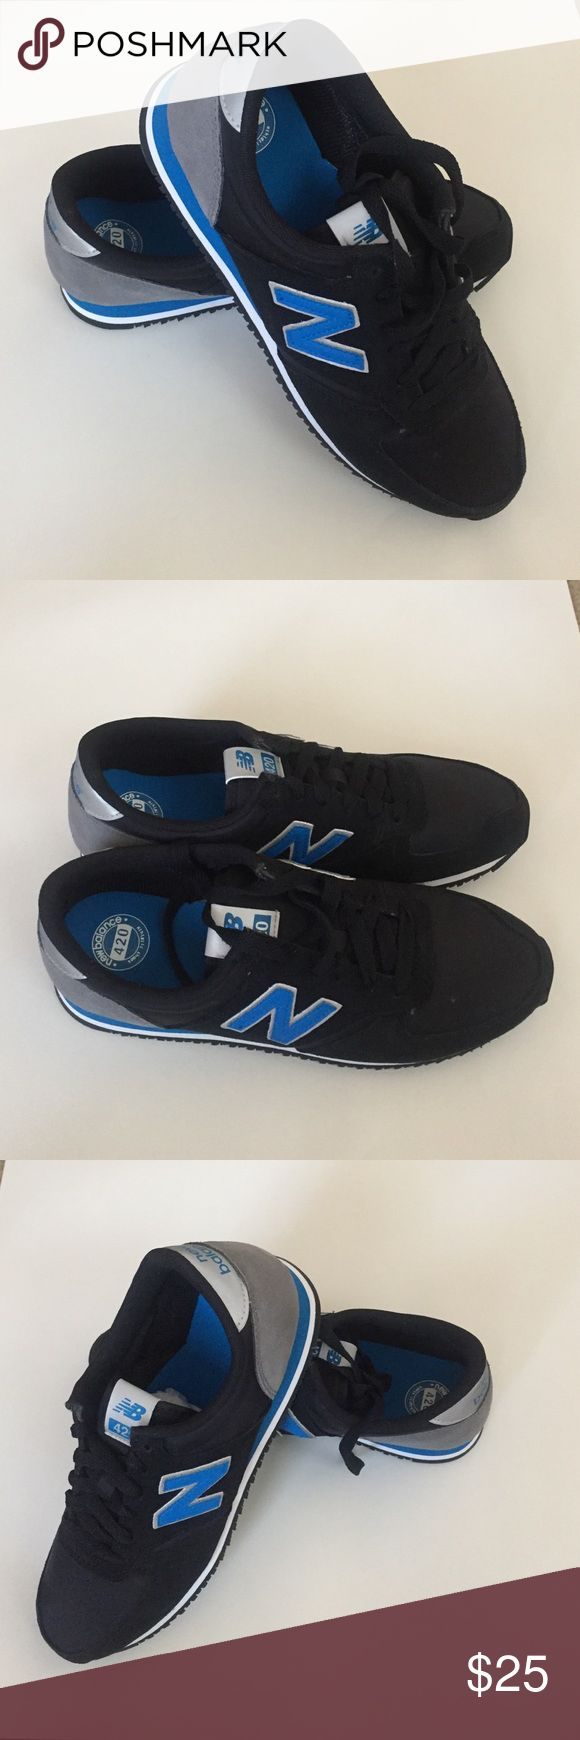 NEW BALANCE 420 athletic shoes NEW BALANCE 420 athletic shoes. US mens size 6/ women's size 8. Brand new, never worn. New Balance Shoes Sneakers